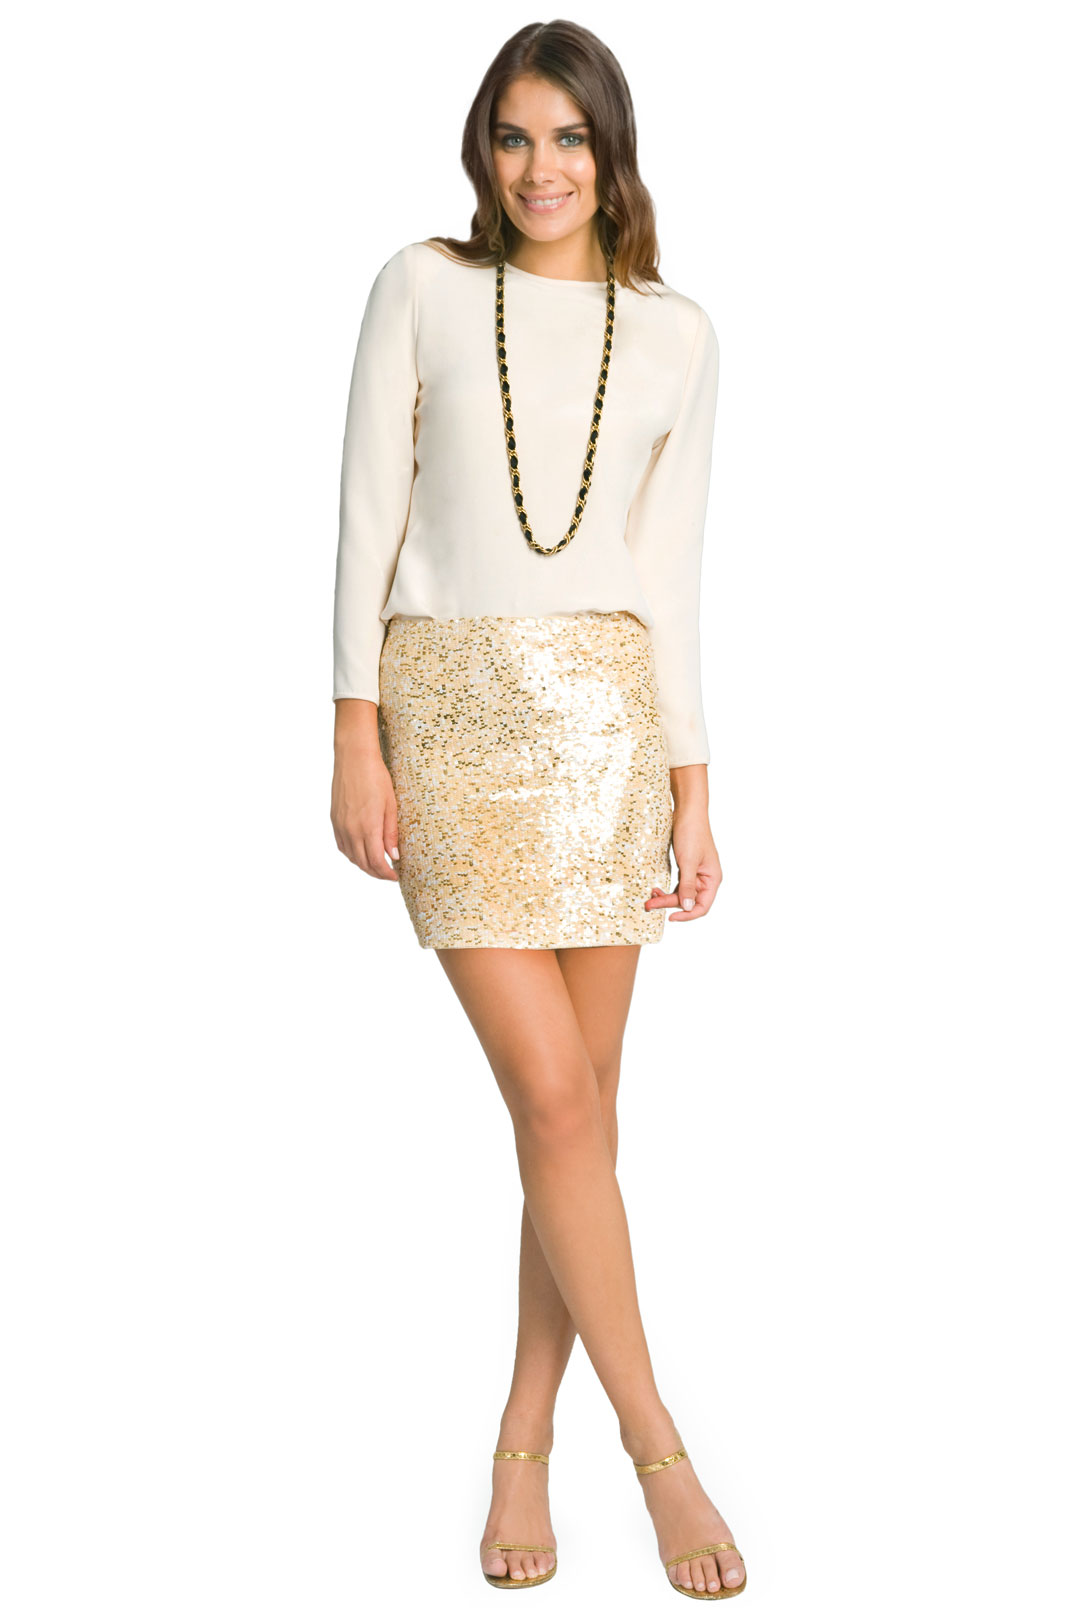 Glam Nude Sequin Skirt by Haute Hippie at $50 | Rent The Runway